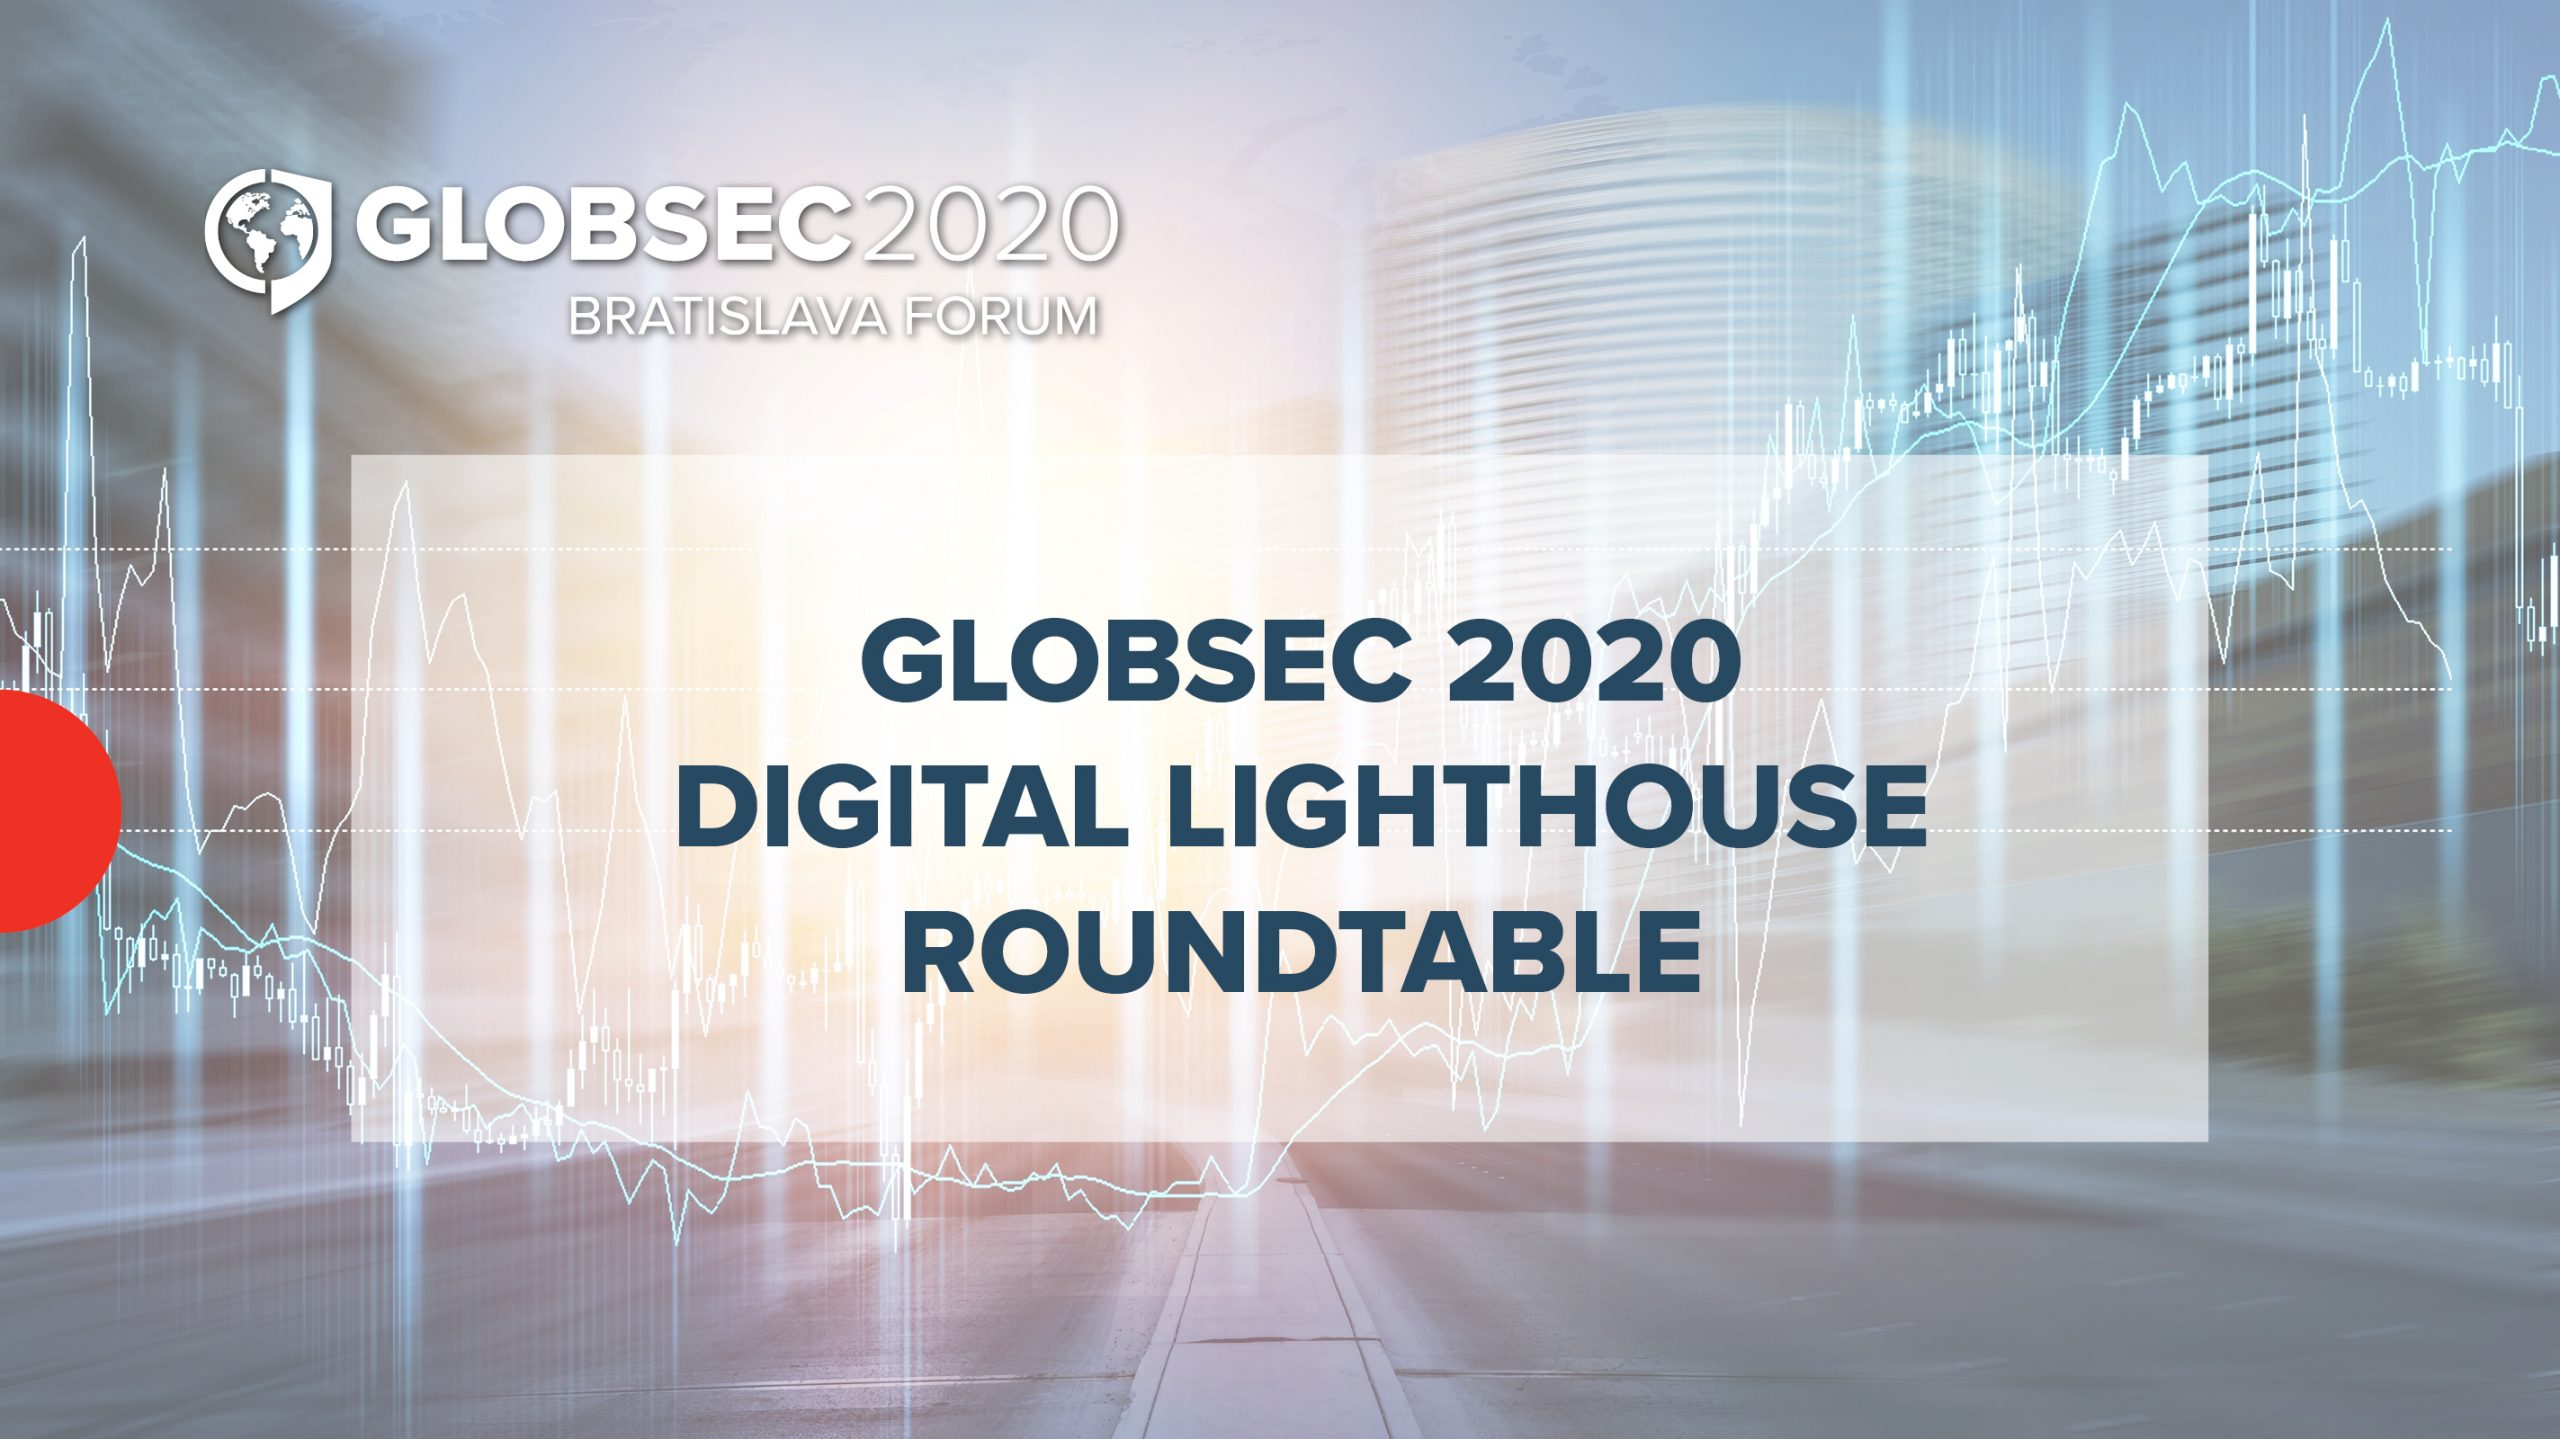 GLOBSEC 2020 Digital Lighthouse Roundtable